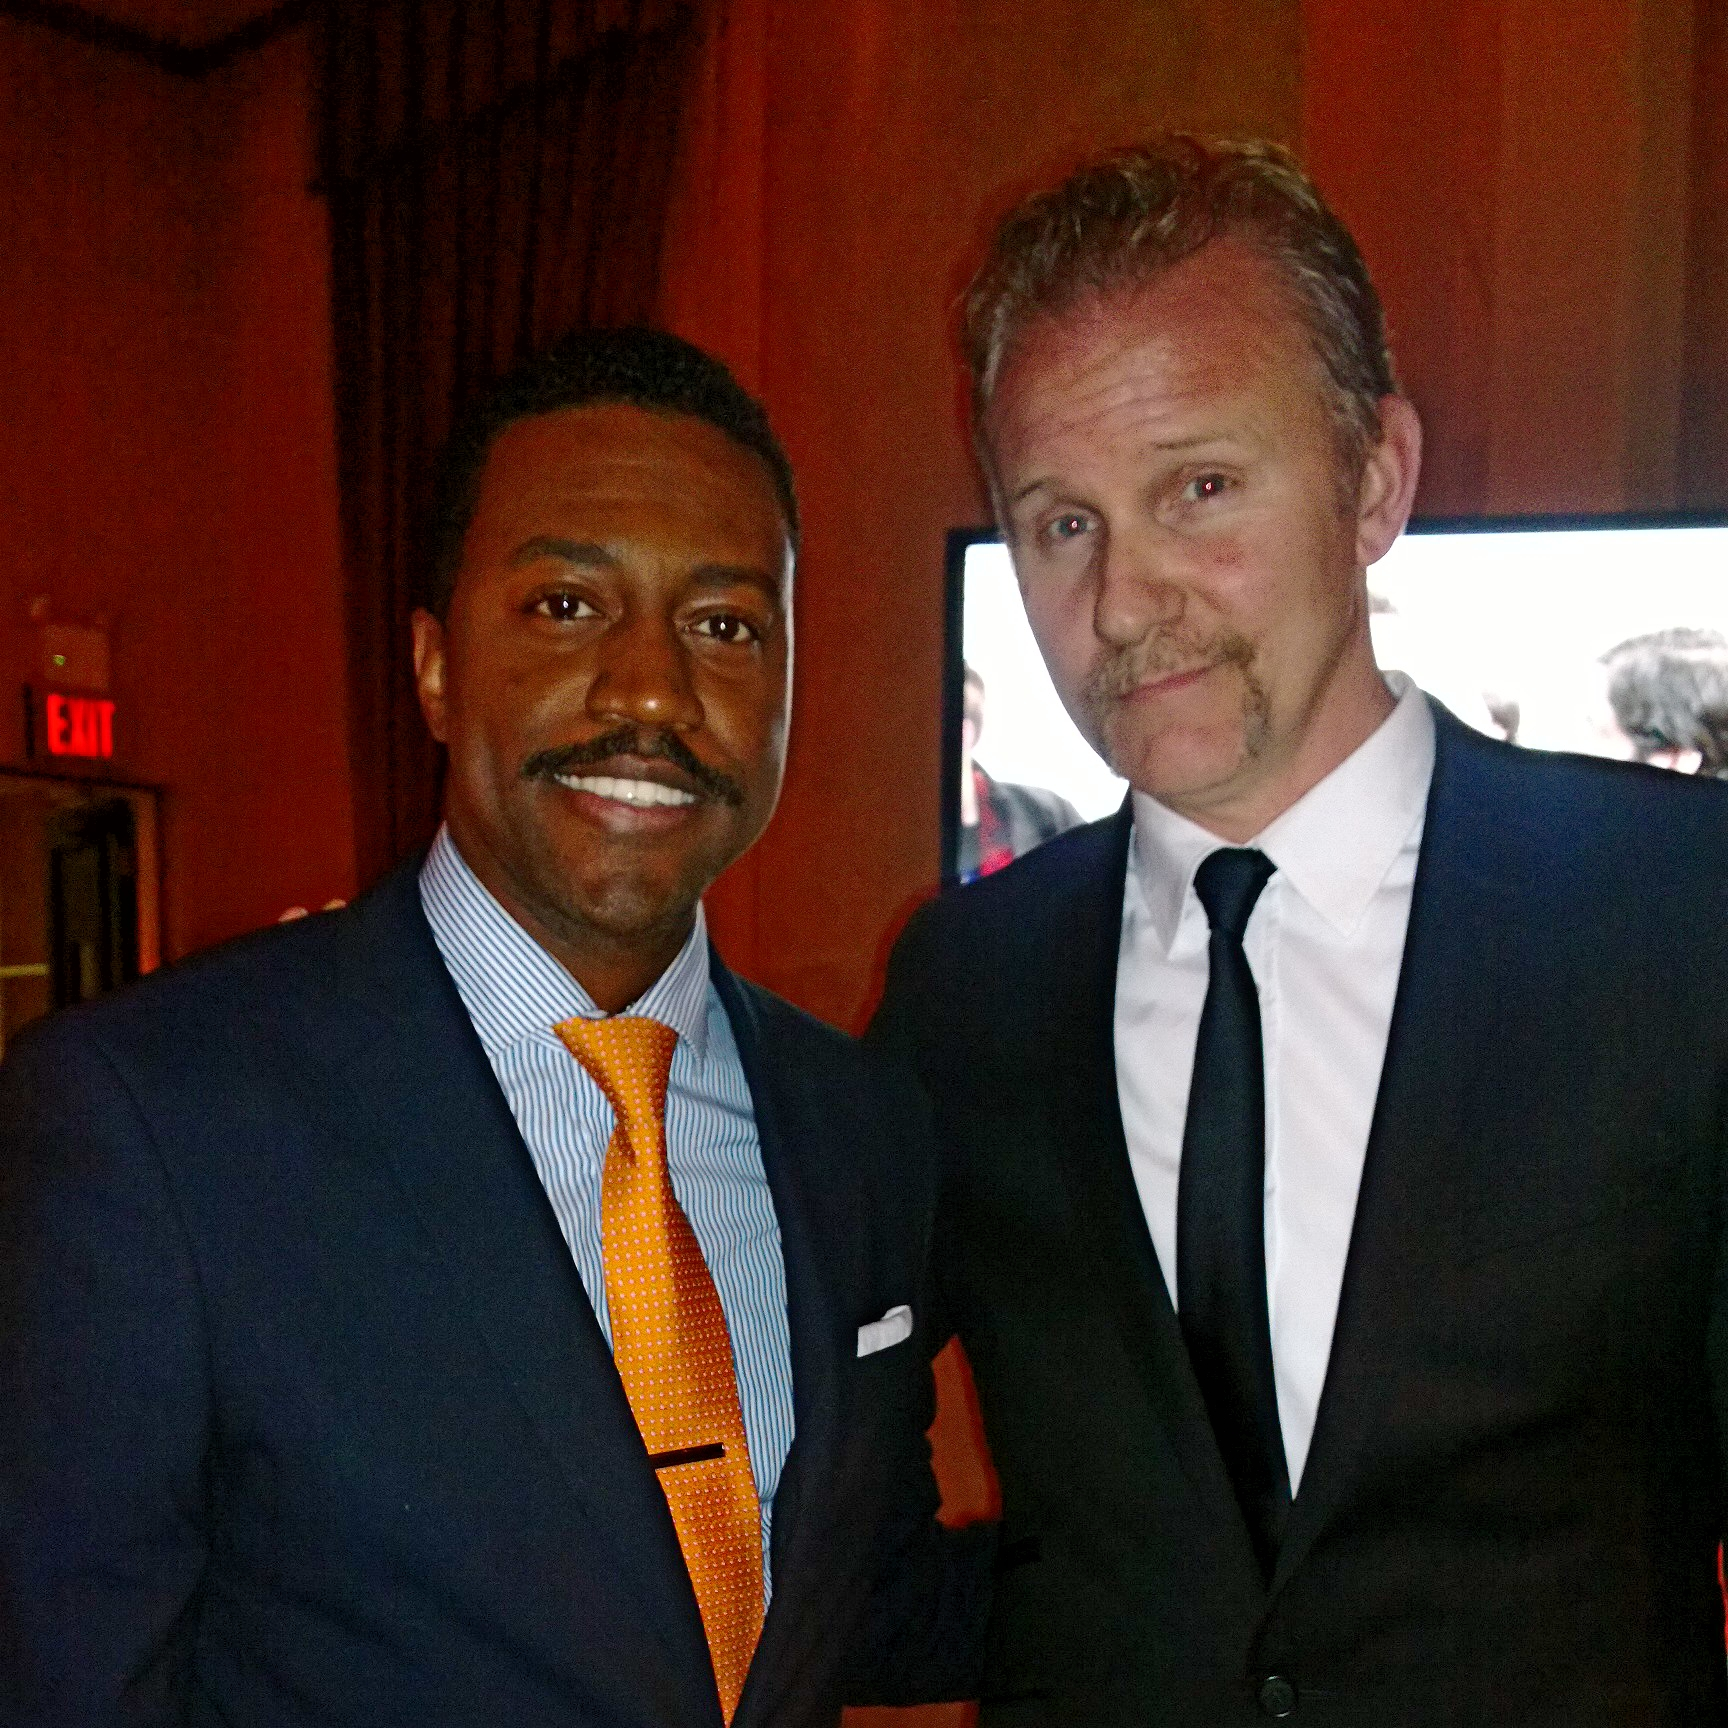 Phaon Spurlock and Morgan Spurlock at the Gotham Awards